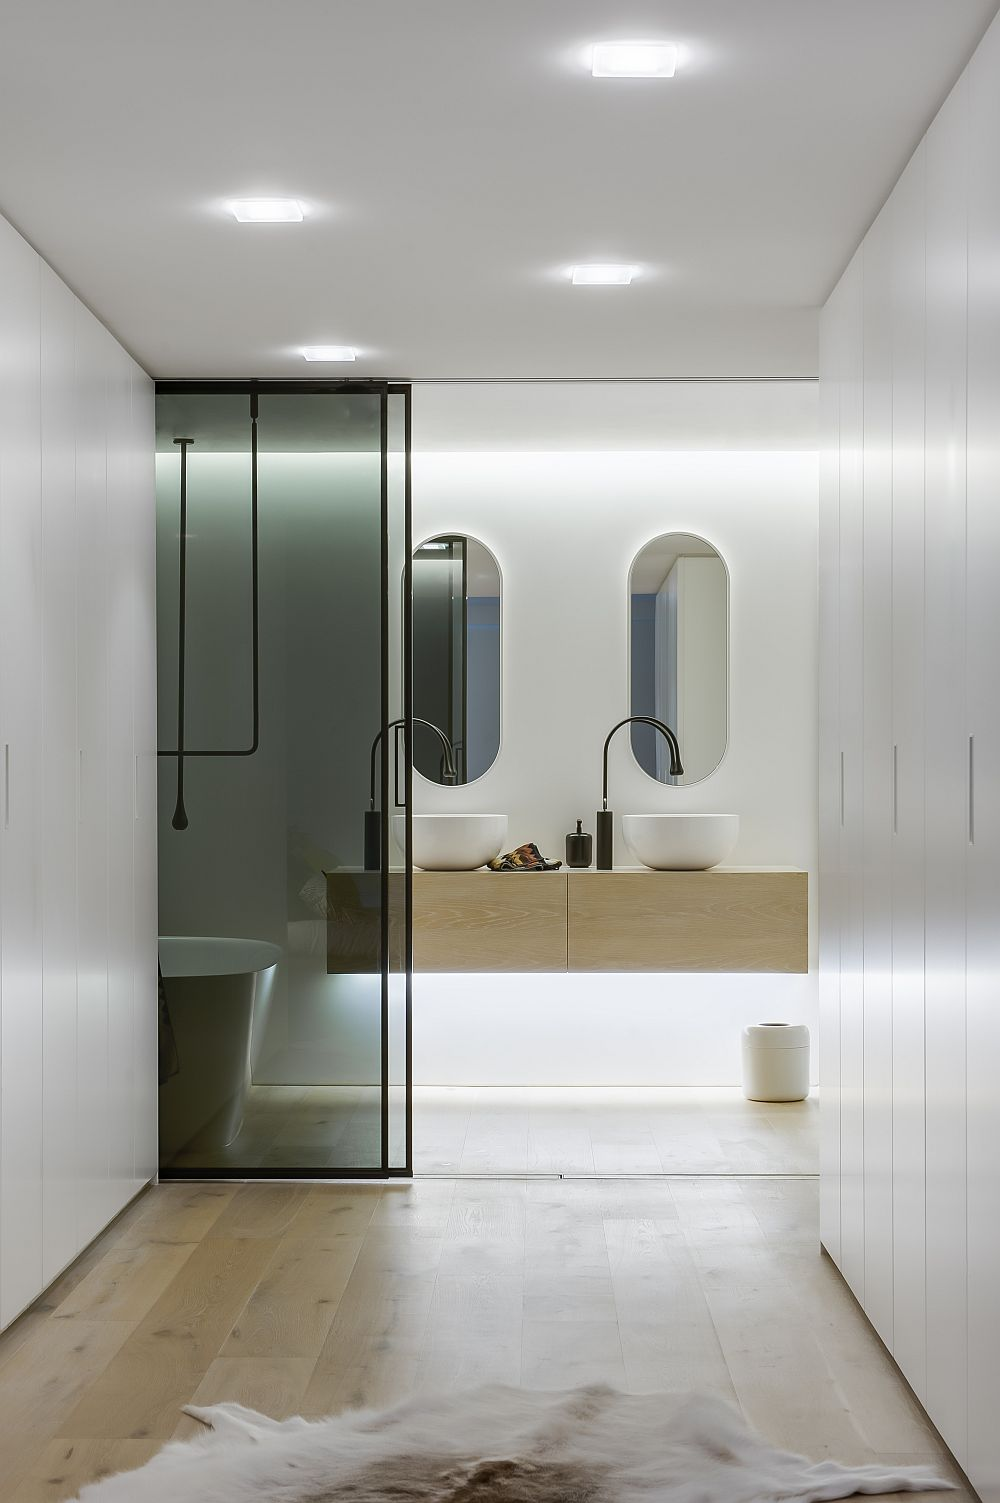 View of the bathroom and the dressing area Ingenious Contemporary Bathroom By Minosa Design: Refreshingly Radiant!